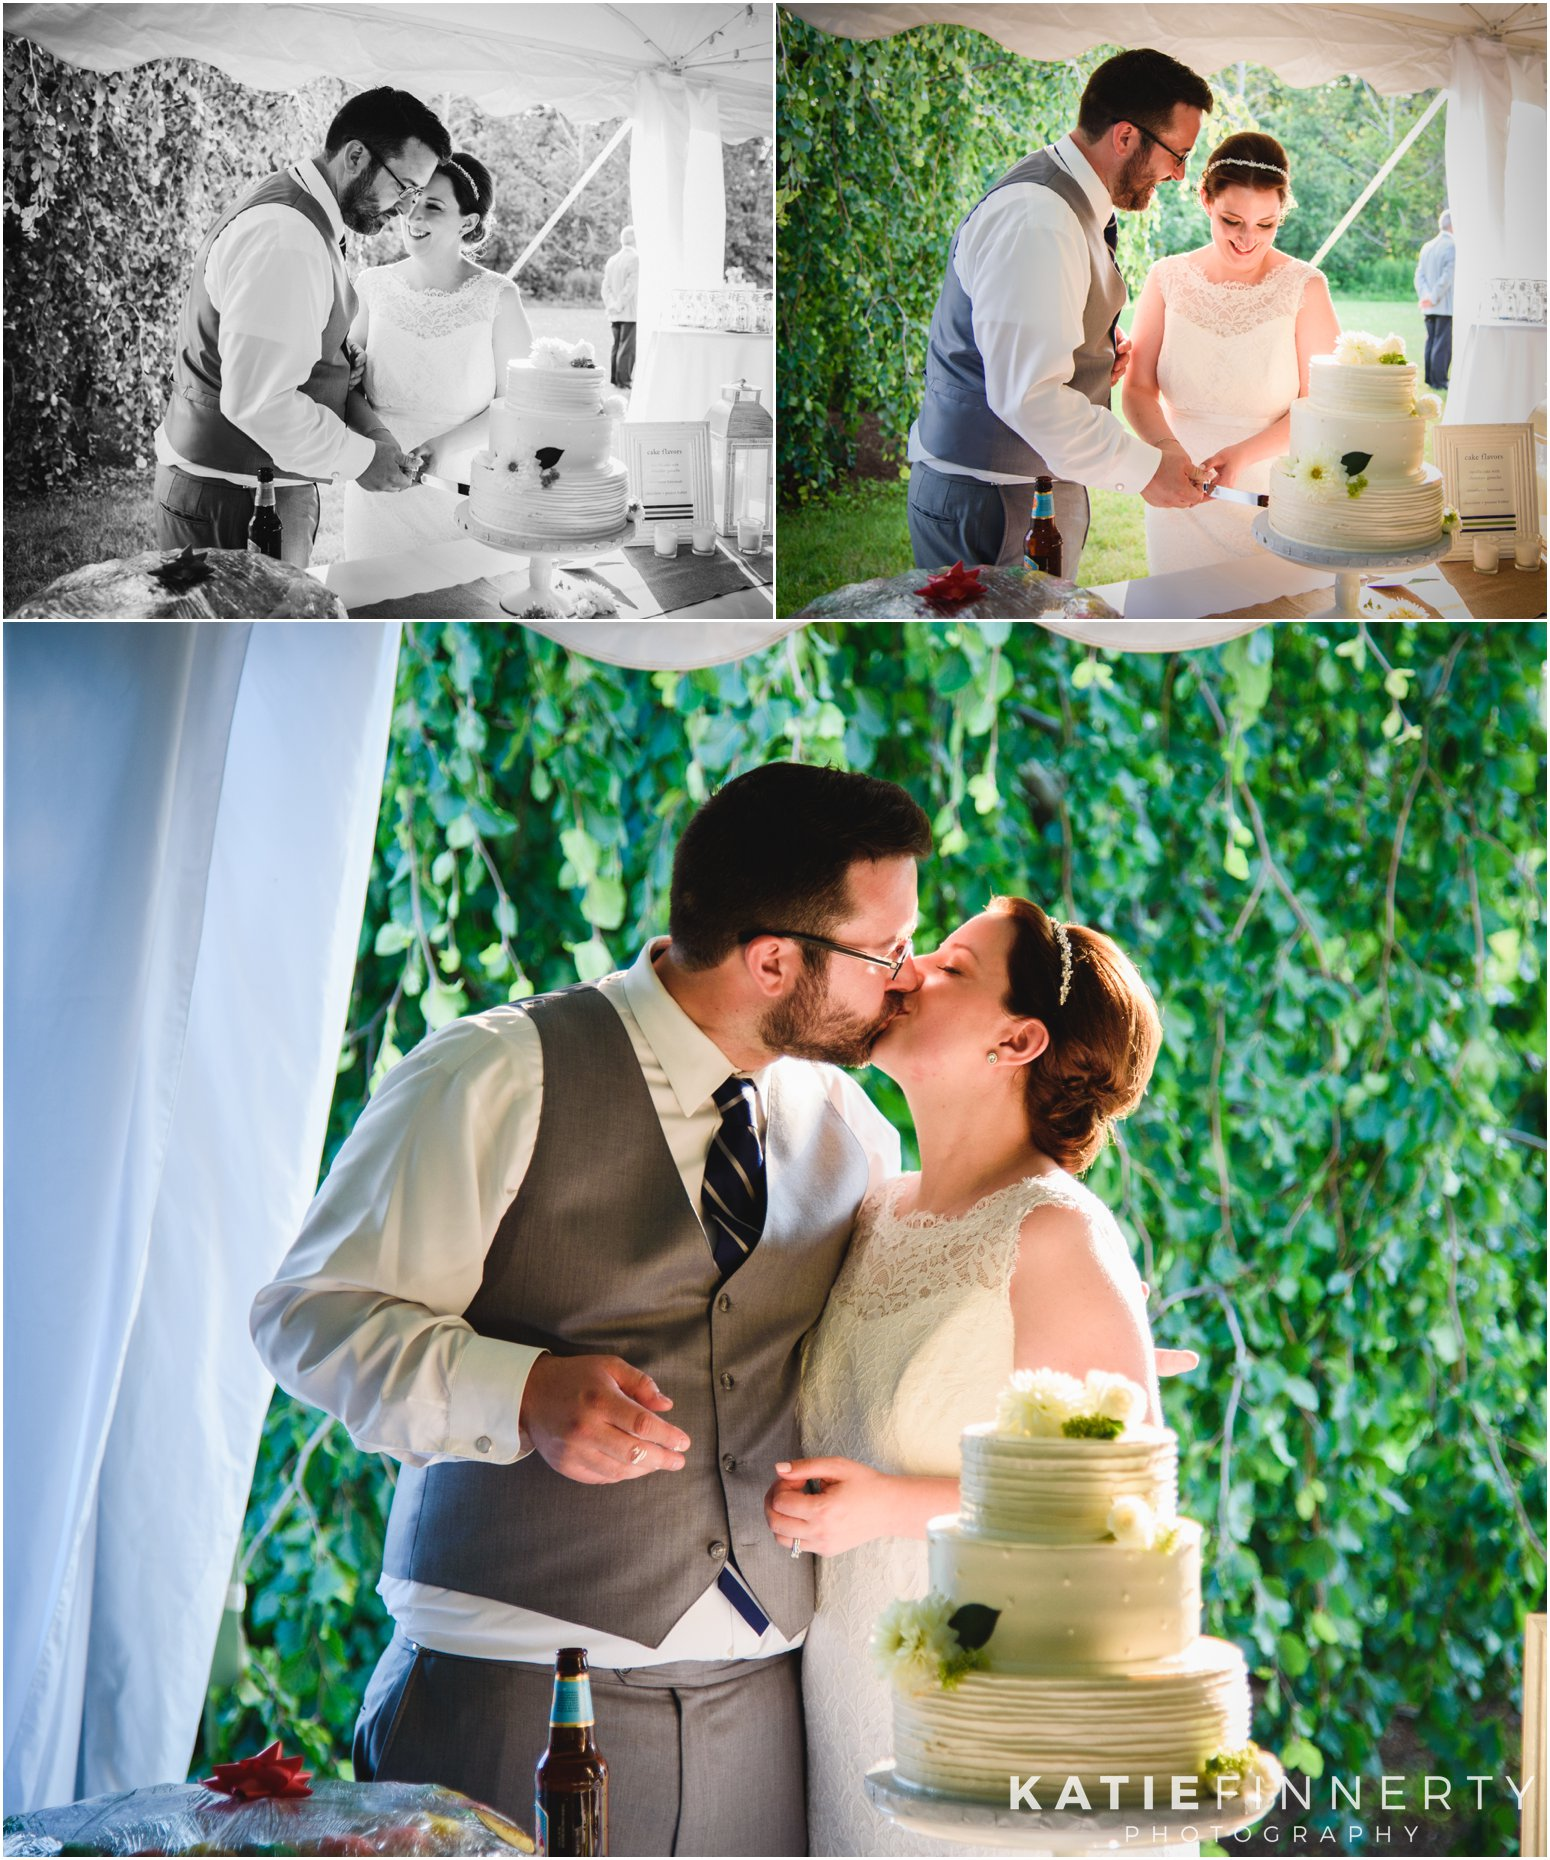 Rochester Wedding Photography - Webster Arboretum